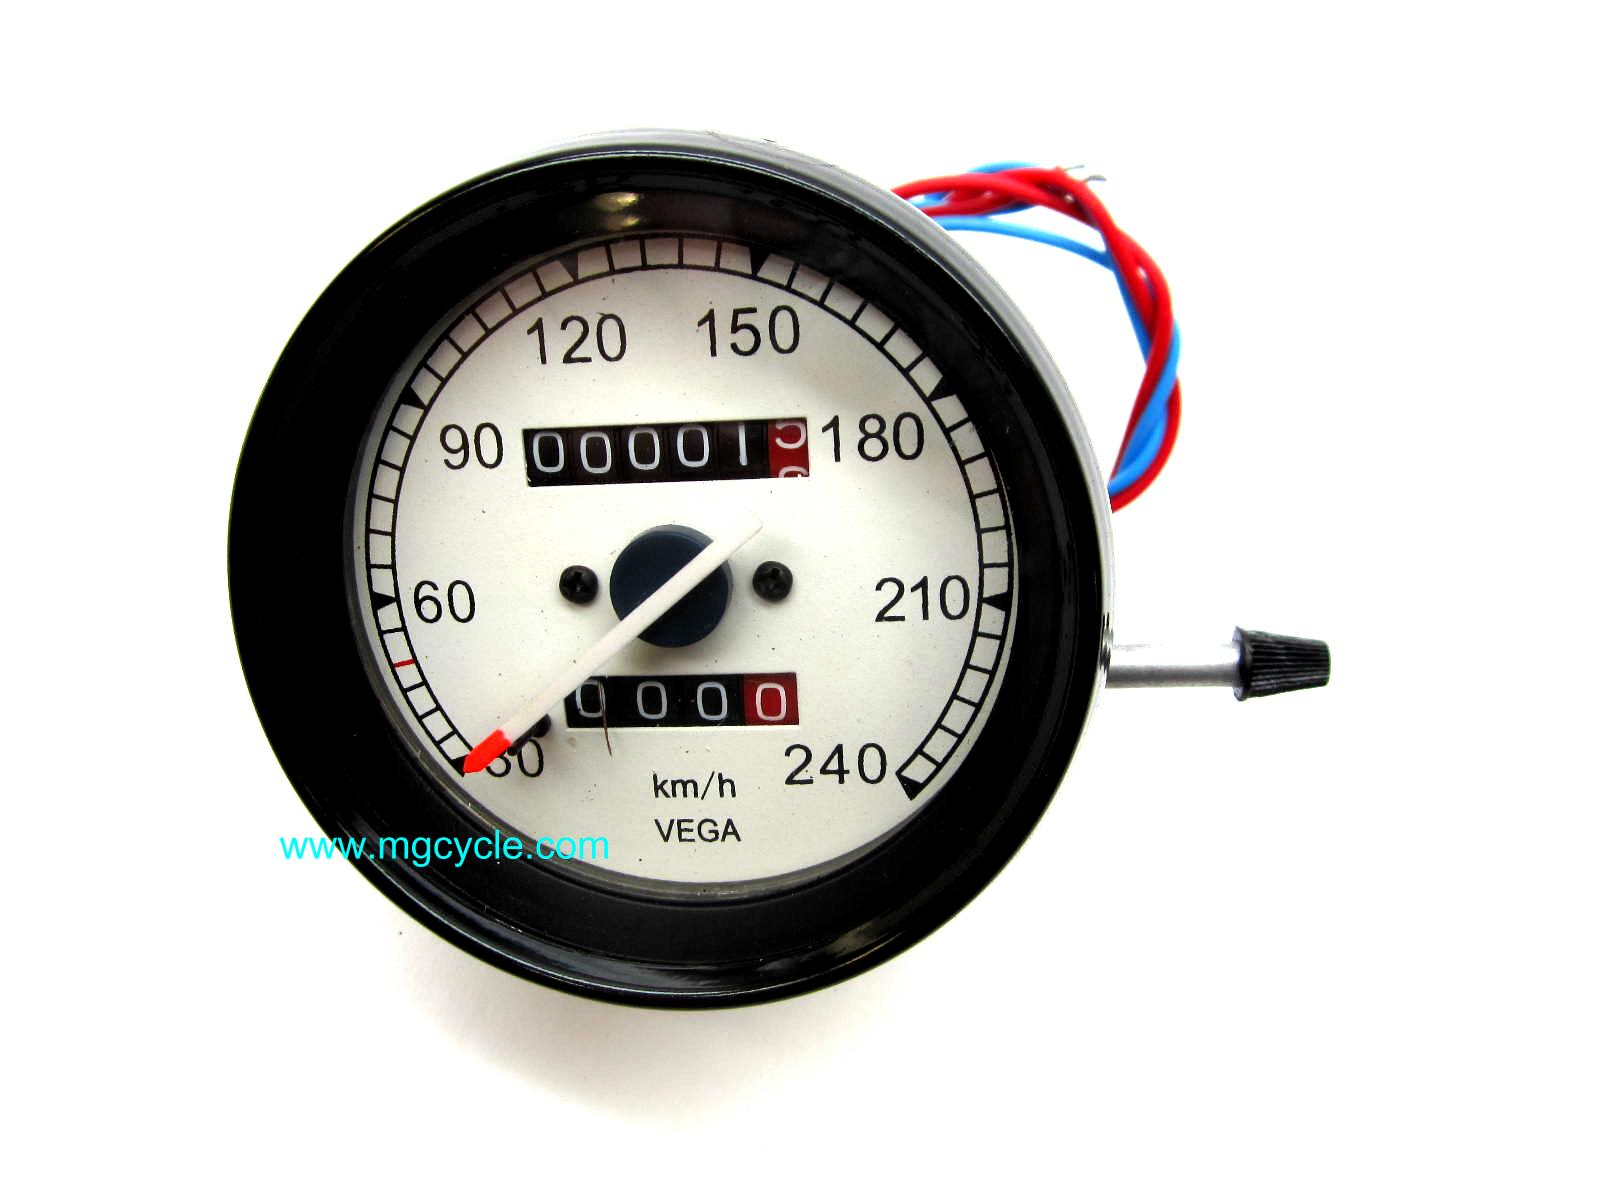 VEGA speedometer, 80mm, lighted, KPH, odometer, trip meter